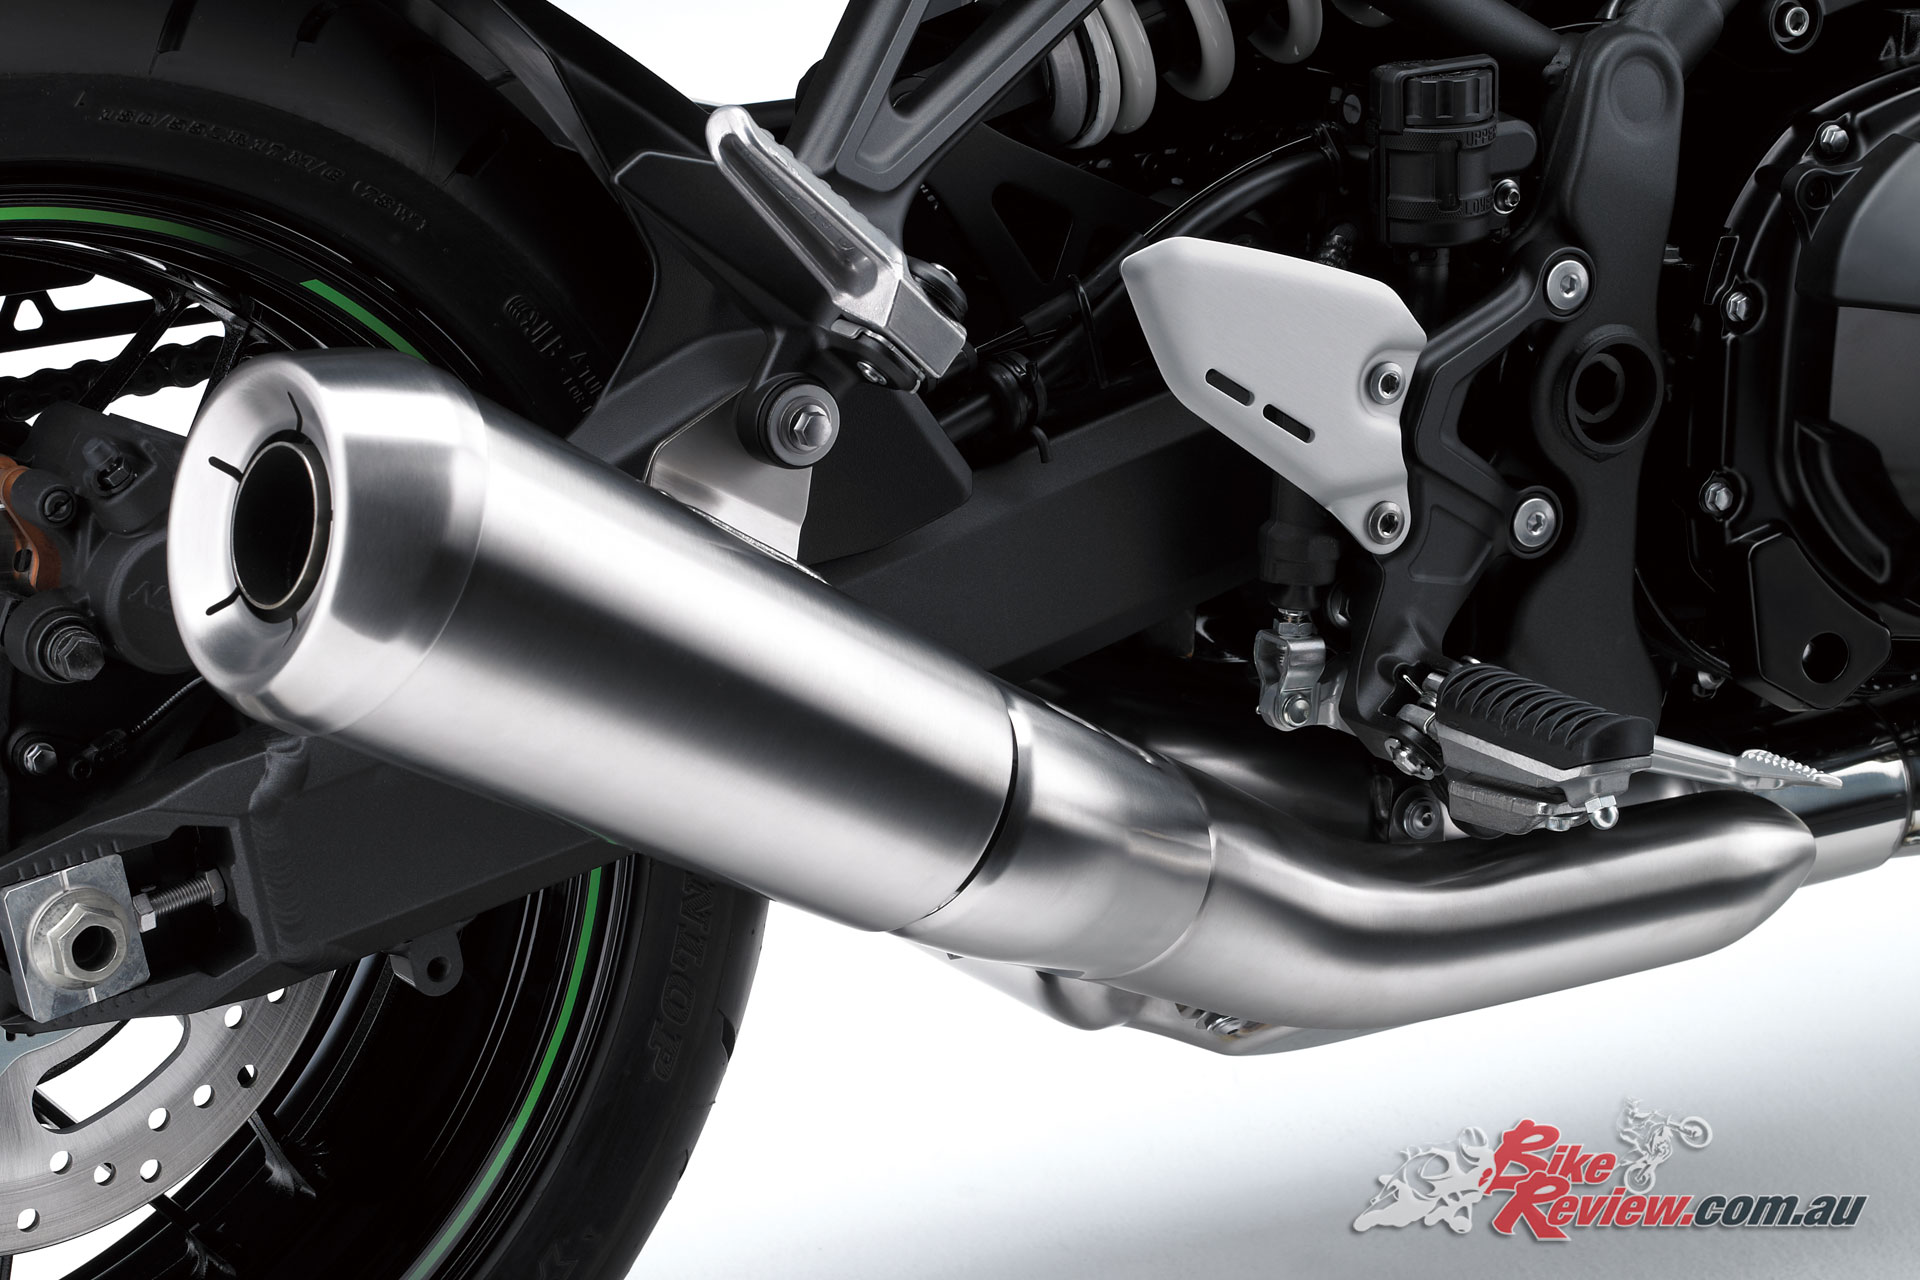 The Z900RS exhaust is great for a manufacturer standard in this day and age